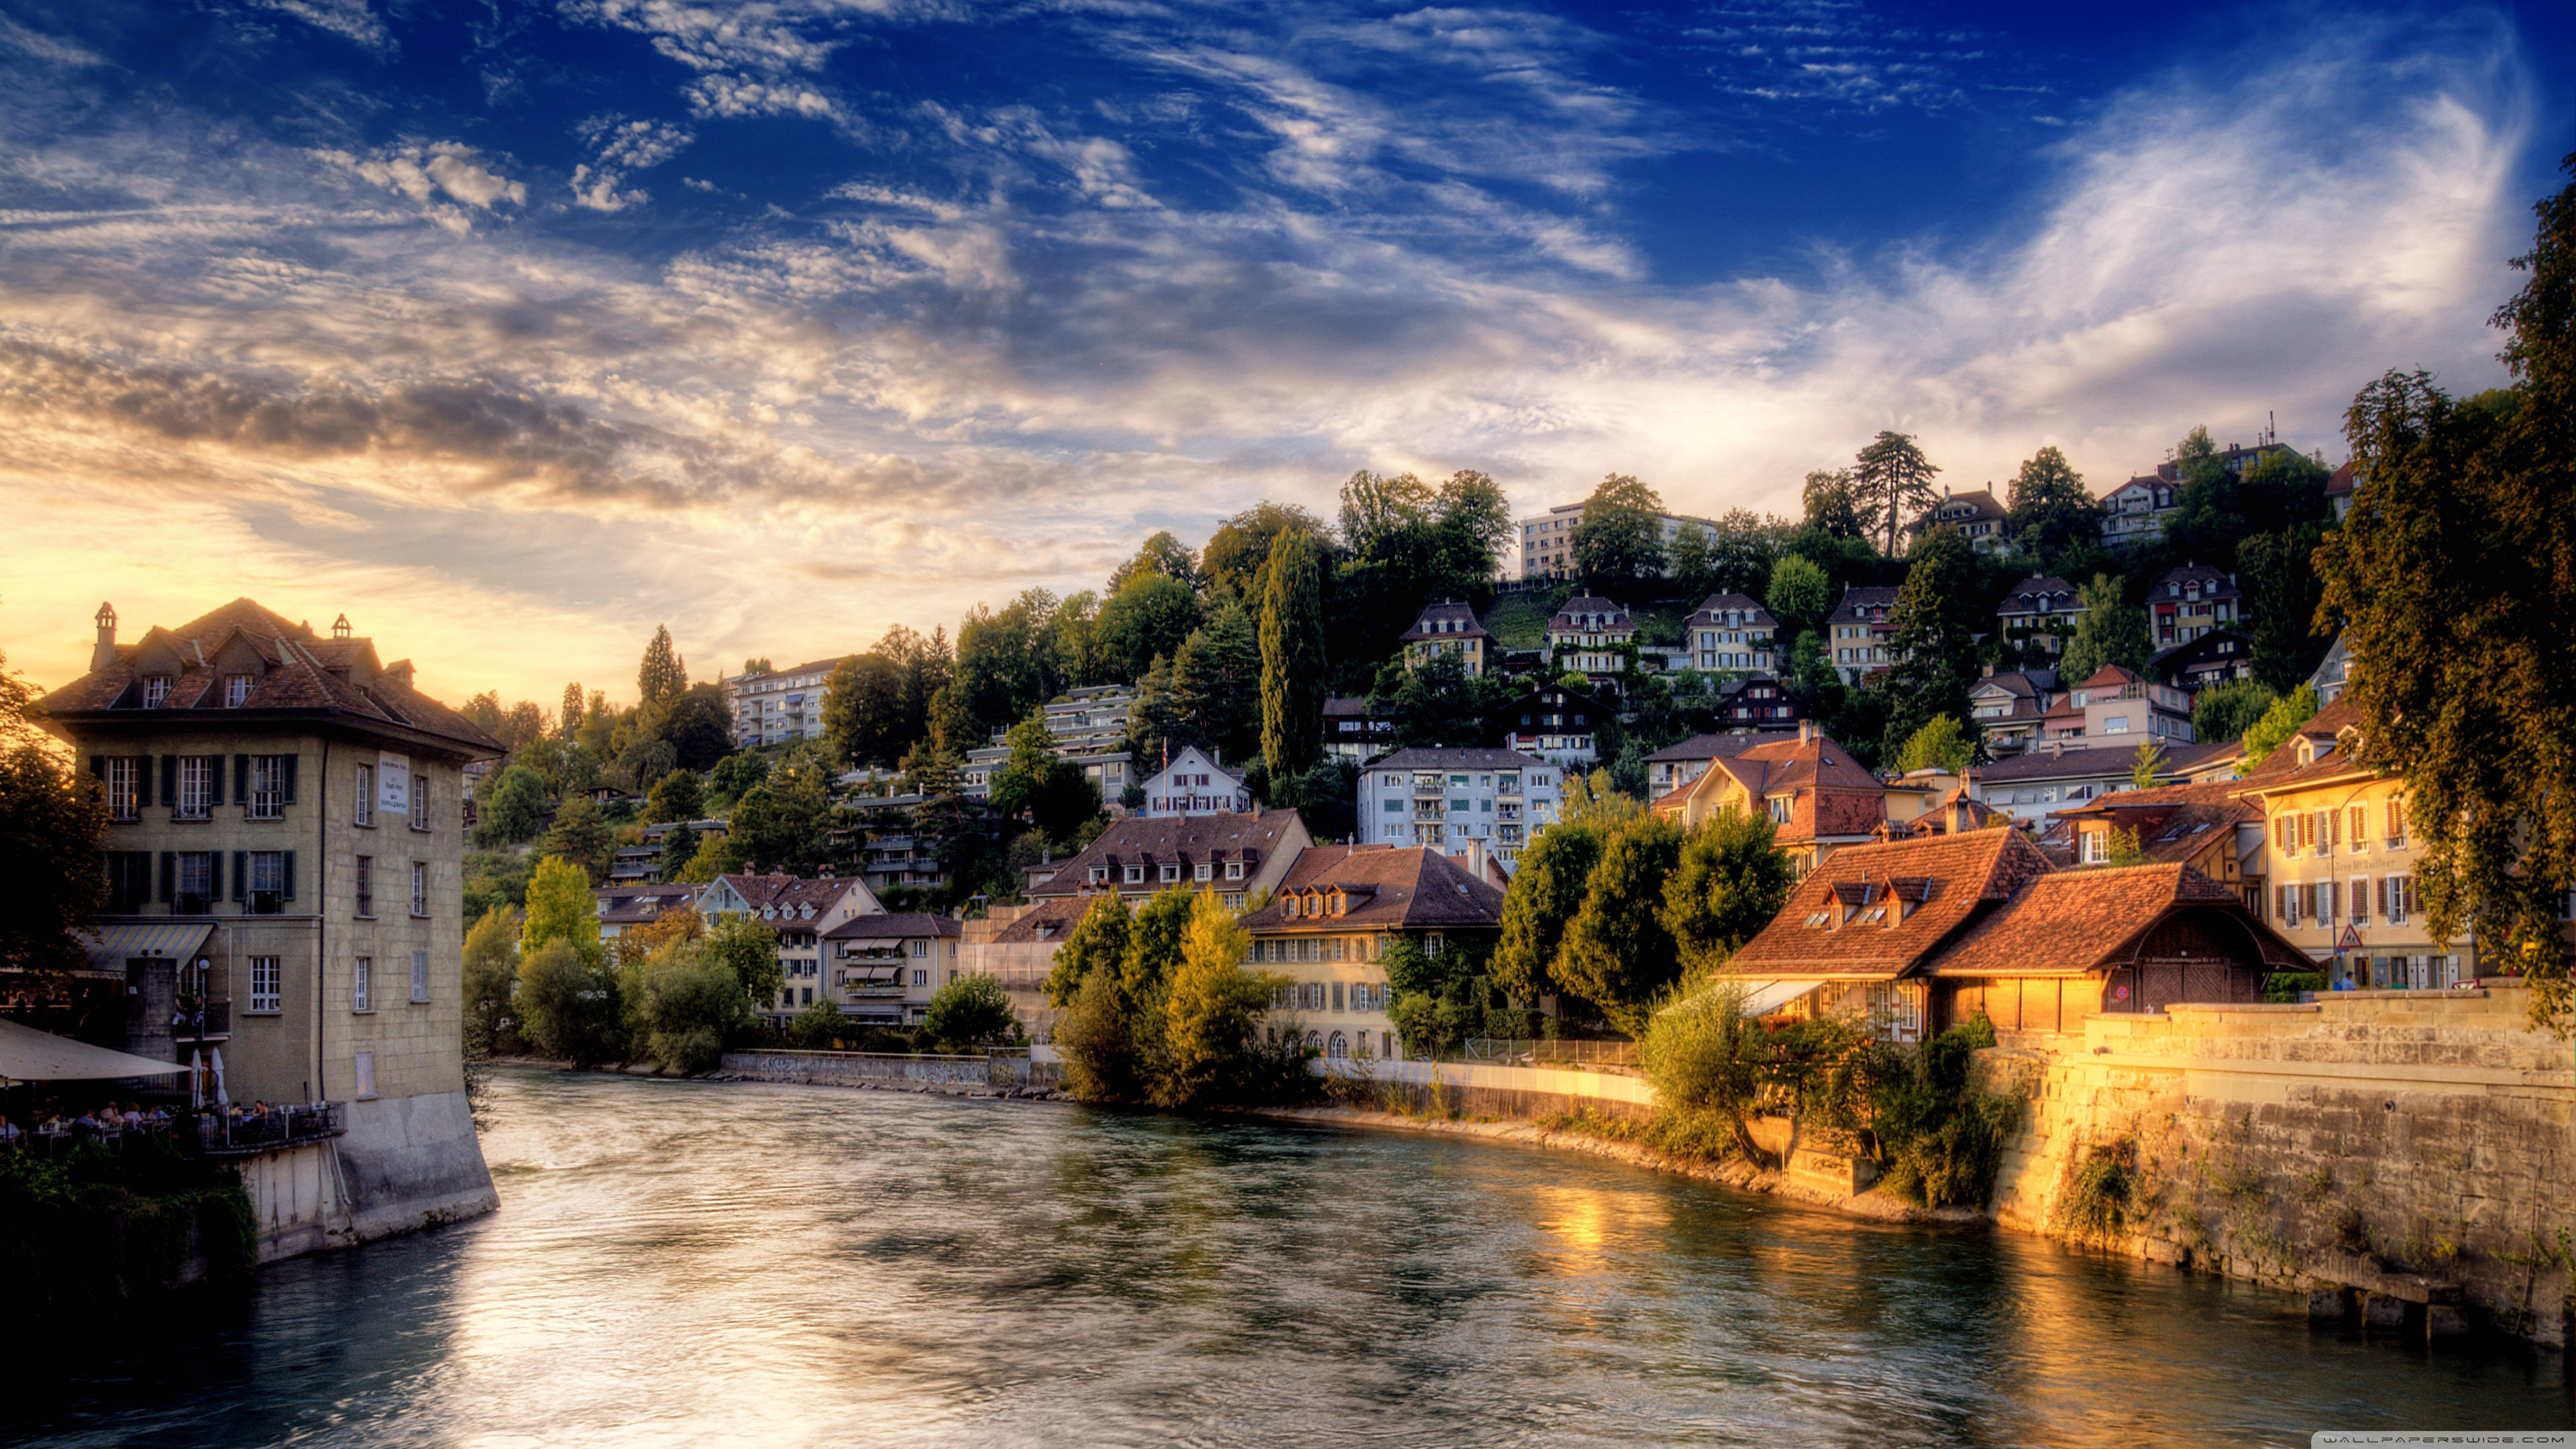 Free Download Bern Hdr 4k Hd Desktop Wallpaper For Dual Monitor Desktops 3840x2160 For Your Desktop Mobile Tablet Explore 29 Bern Wallpapers Bern Wallpapers